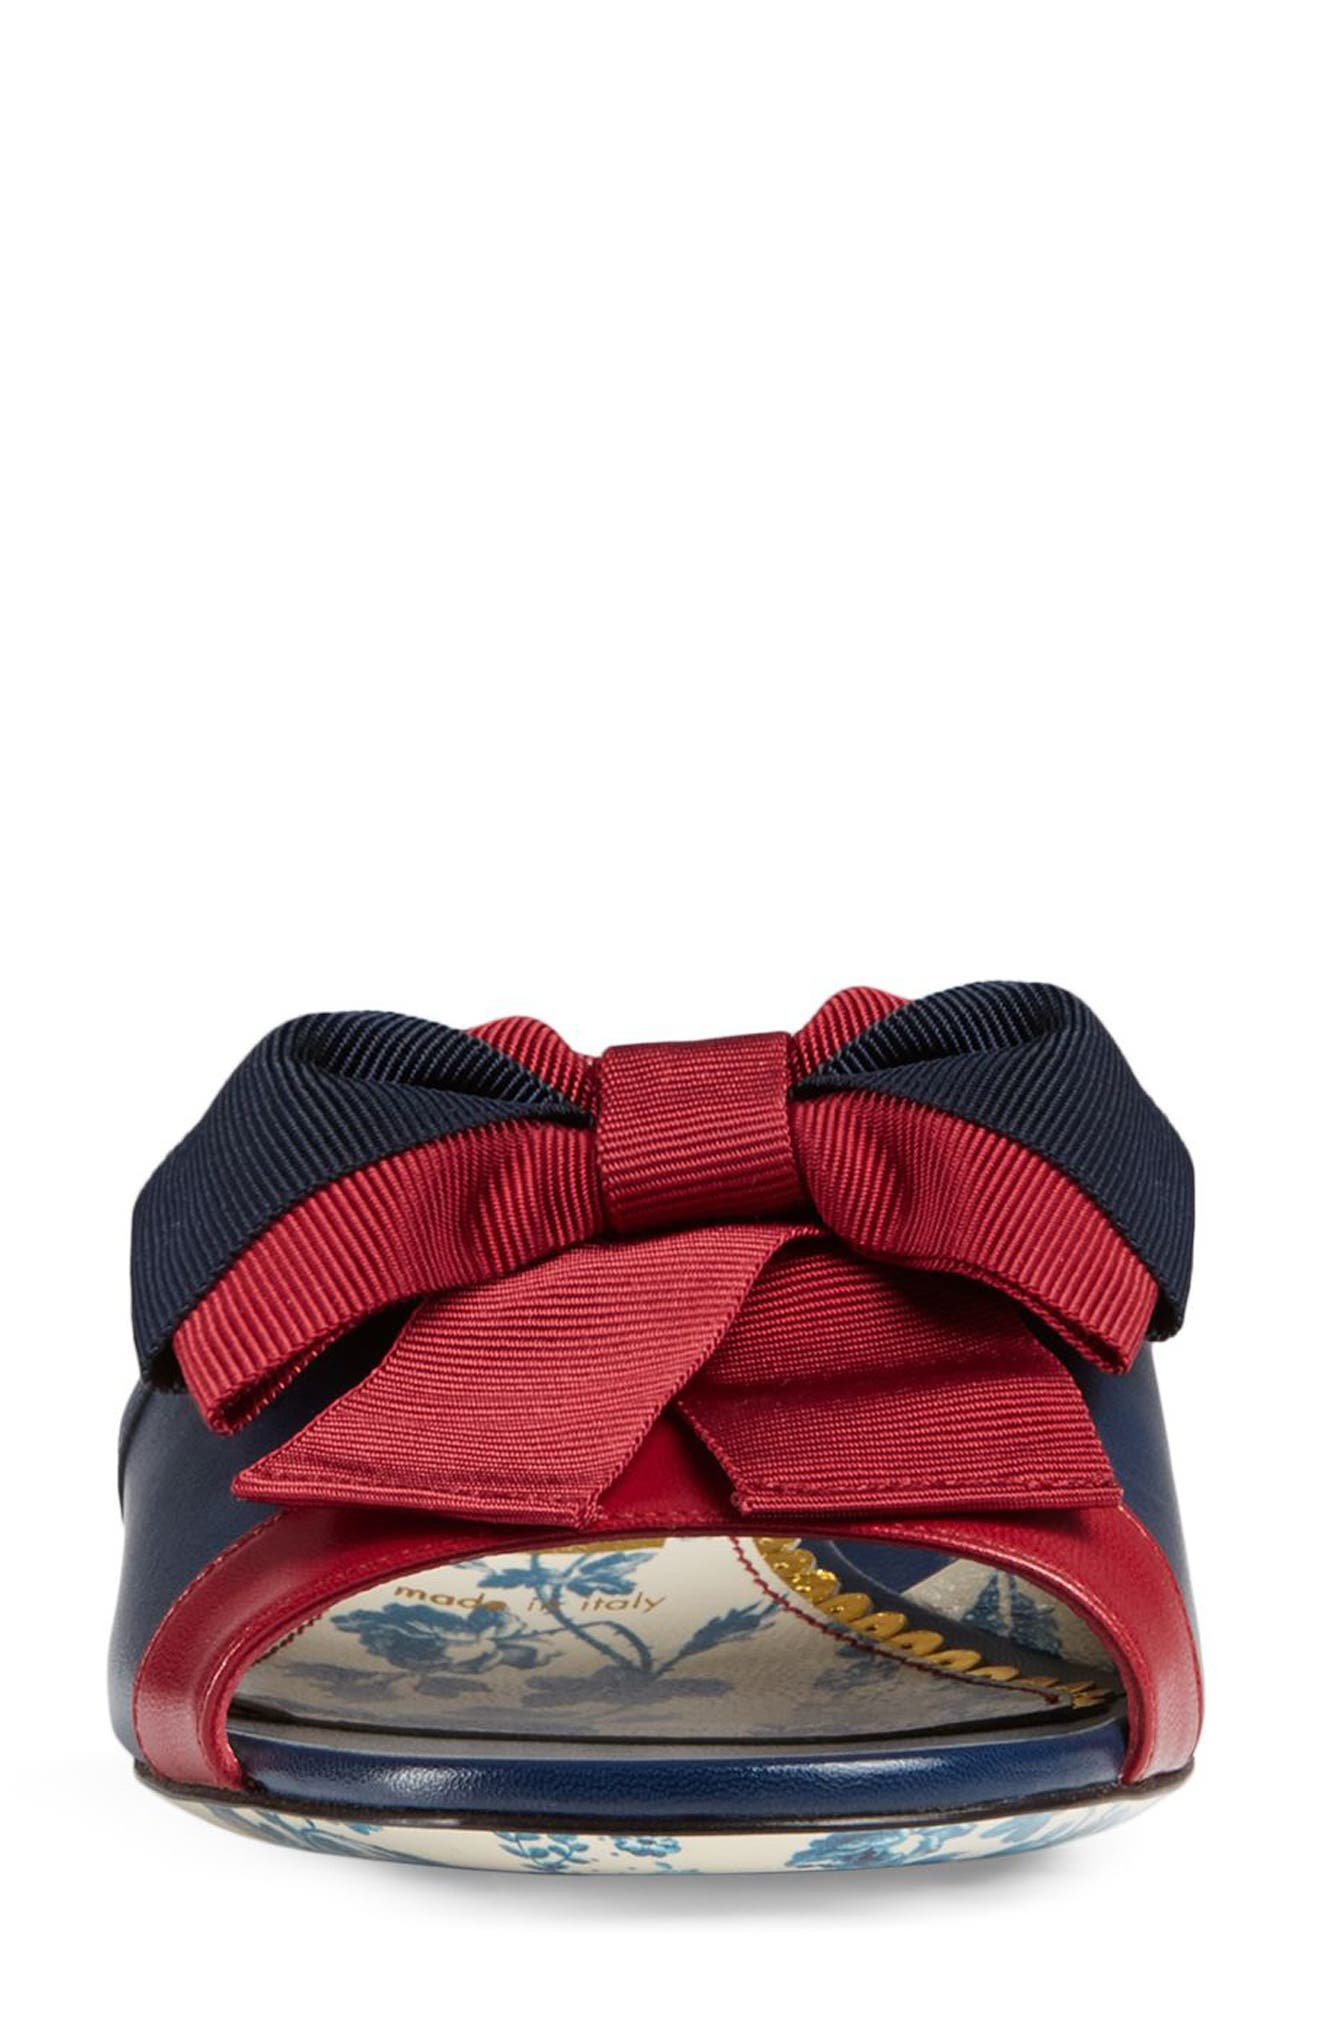 GUCCI, Sackville Bow Sandal, Alternate thumbnail 4, color, BLUE/ RED